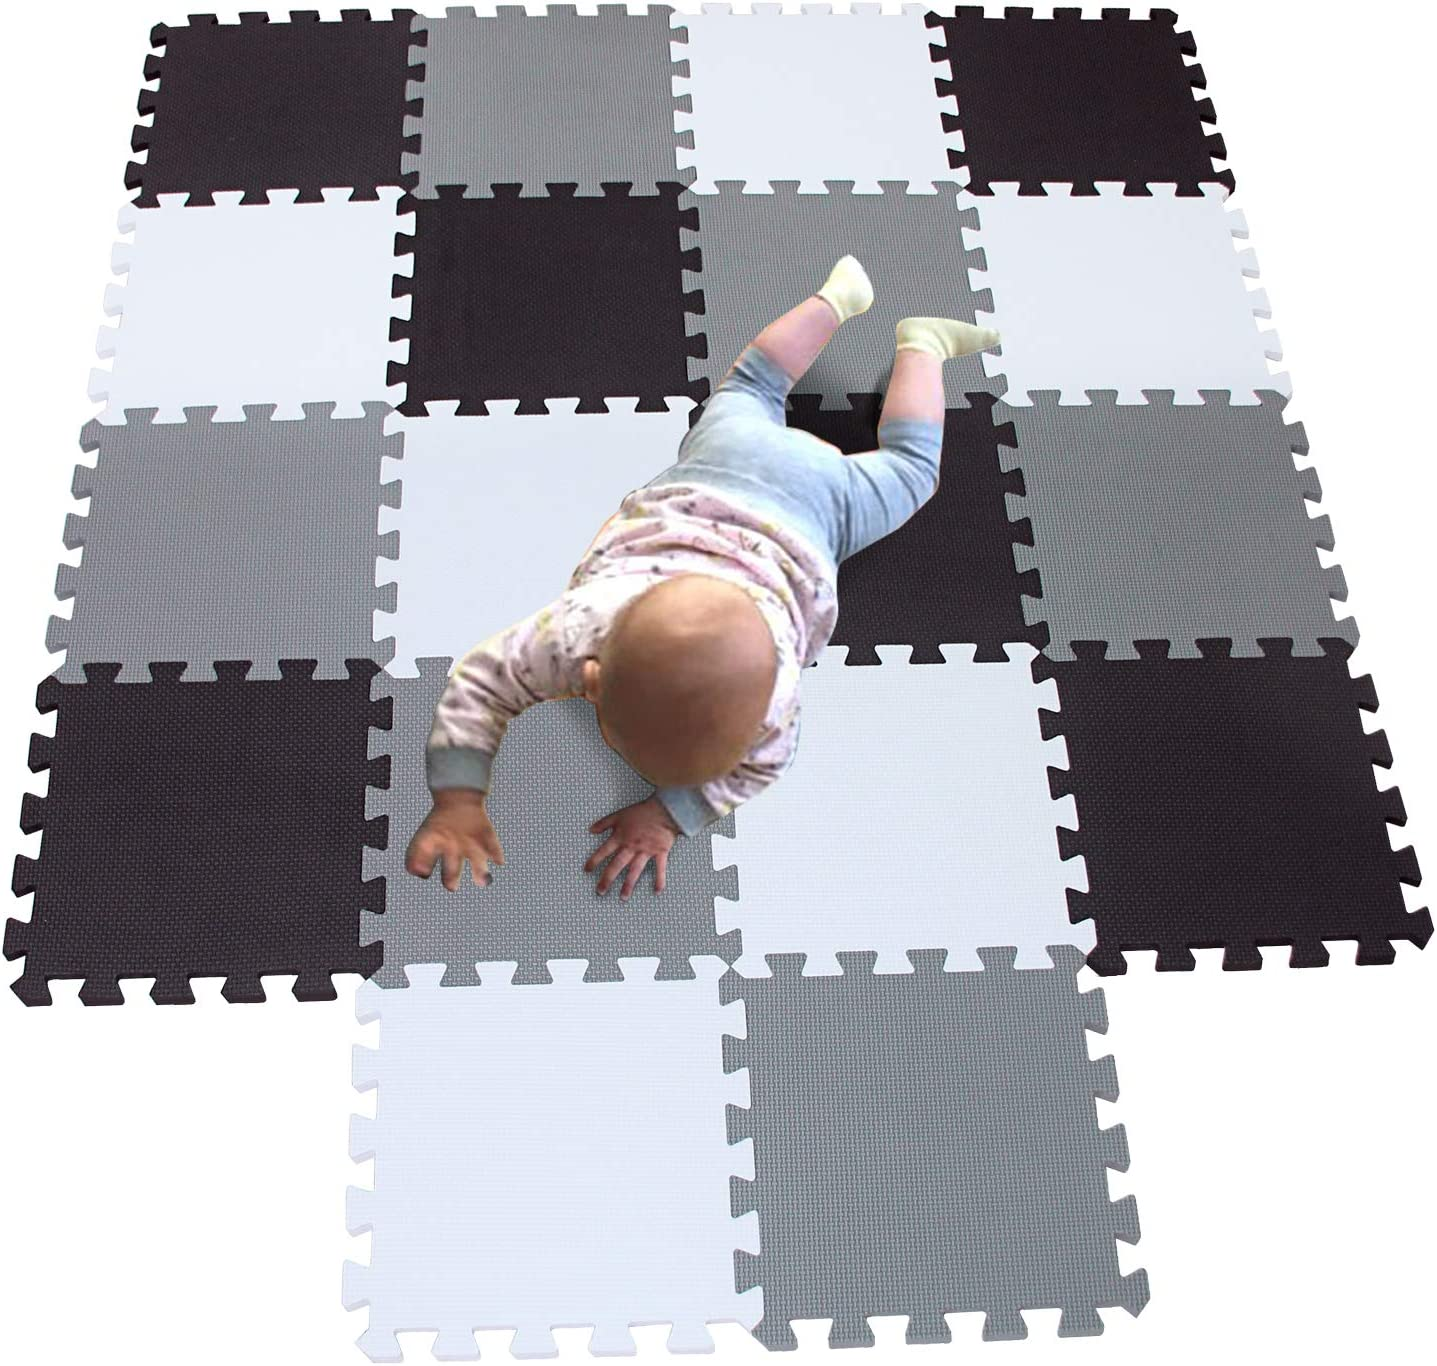 MQIAOHAM playmat Foam Play Tiles Interlocking Play mat Baby Play mats for Kids Floor mats for Children Foam playmats Jigsaw mat Baby Puzzle mat 18 Pieces Children Rug Crawl White Black Grey 101104112: Toys & Games